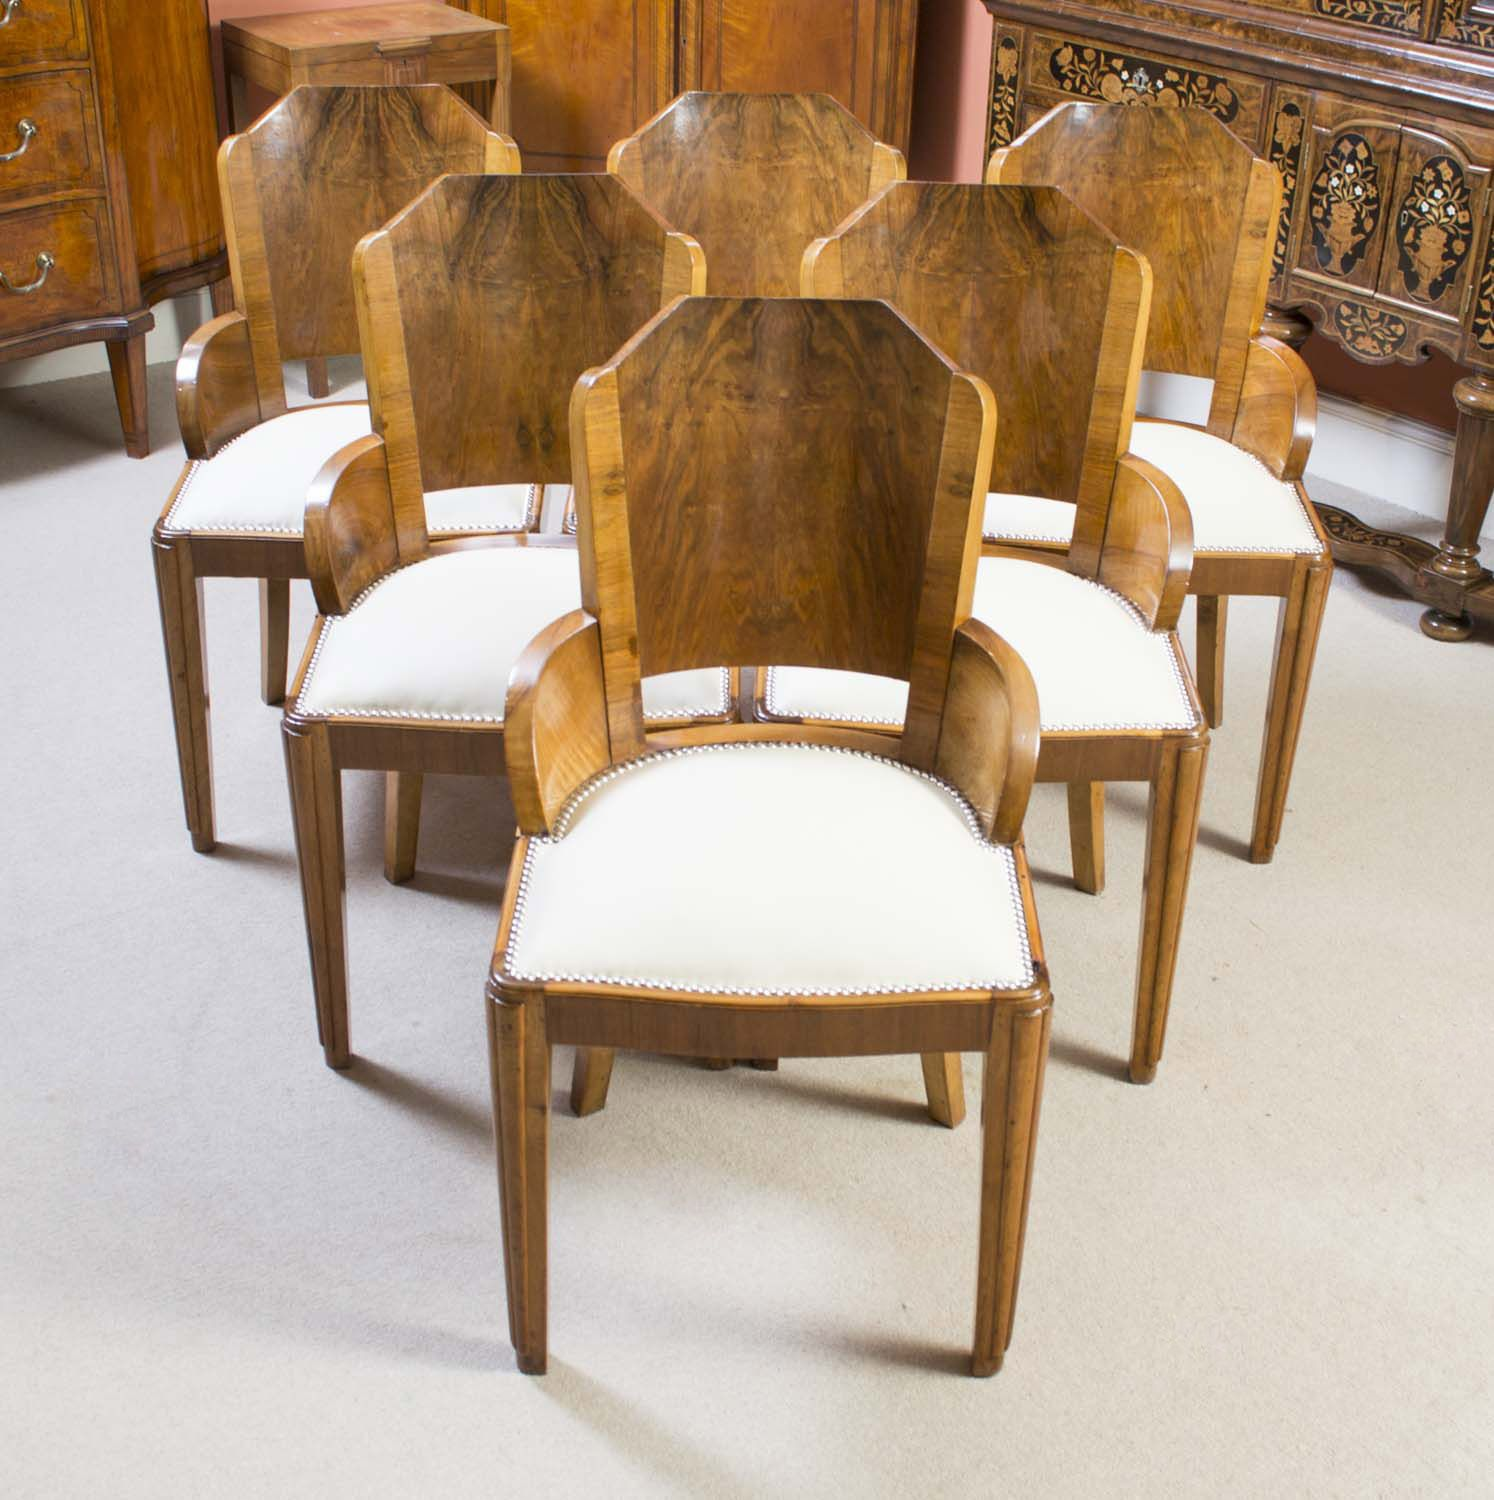 Enjoyable Art Deco Style Dining Chairs Google Search Ship Machost Co Dining Chair Design Ideas Machostcouk